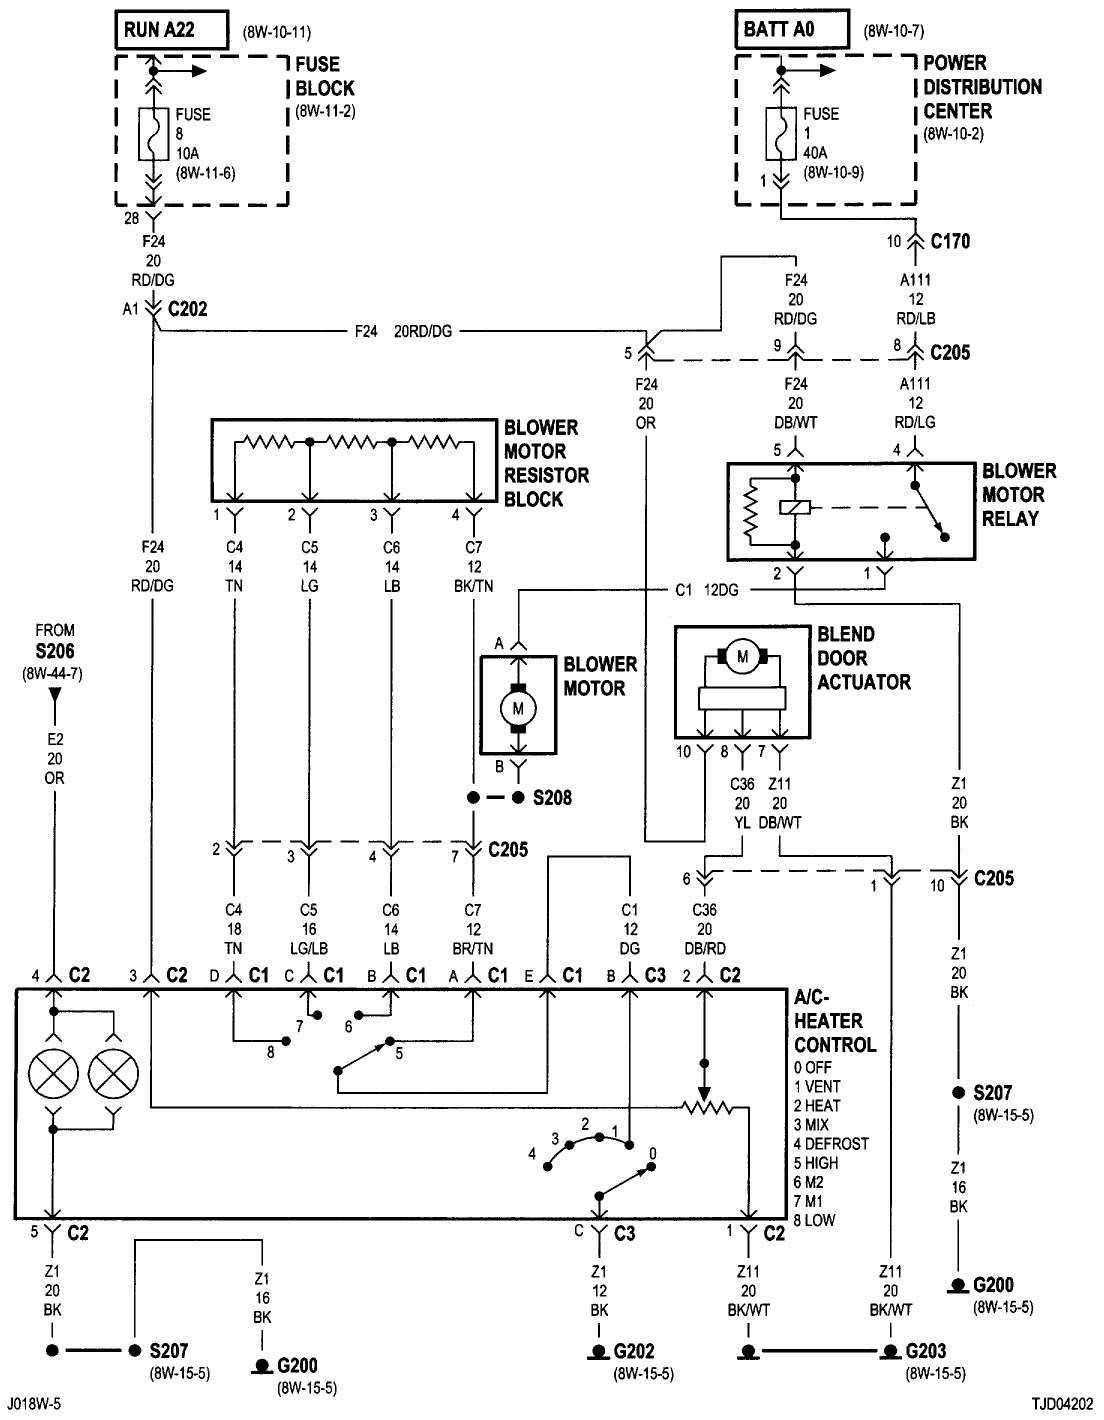 Jeep Wrangler Electrical Wiring - Example Wiring Diagram on jeep compass radio wiring diagram, 1988 jeep yj wiring diagram, ford crown victoria radio wiring diagram, jeep yj water pump, acura tl radio wiring diagram, 89 jeep yj wiring diagram, jeep yj front wheel bearings, jeep yj alternator wiring diagram, 1994 jeep yj wiring diagram, pontiac grand am radio wiring diagram, gmc envoy radio wiring diagram, pontiac sunbird radio wiring diagram, 1987 jeep yj wiring diagram, chrysler crossfire radio wiring diagram, ford tempo radio wiring diagram, 1988 jeep ignition wiring diagram, bmw z3 radio wiring diagram, bmw 525i radio wiring diagram, gmc vandura radio wiring diagram, jeep yj electrical problems,